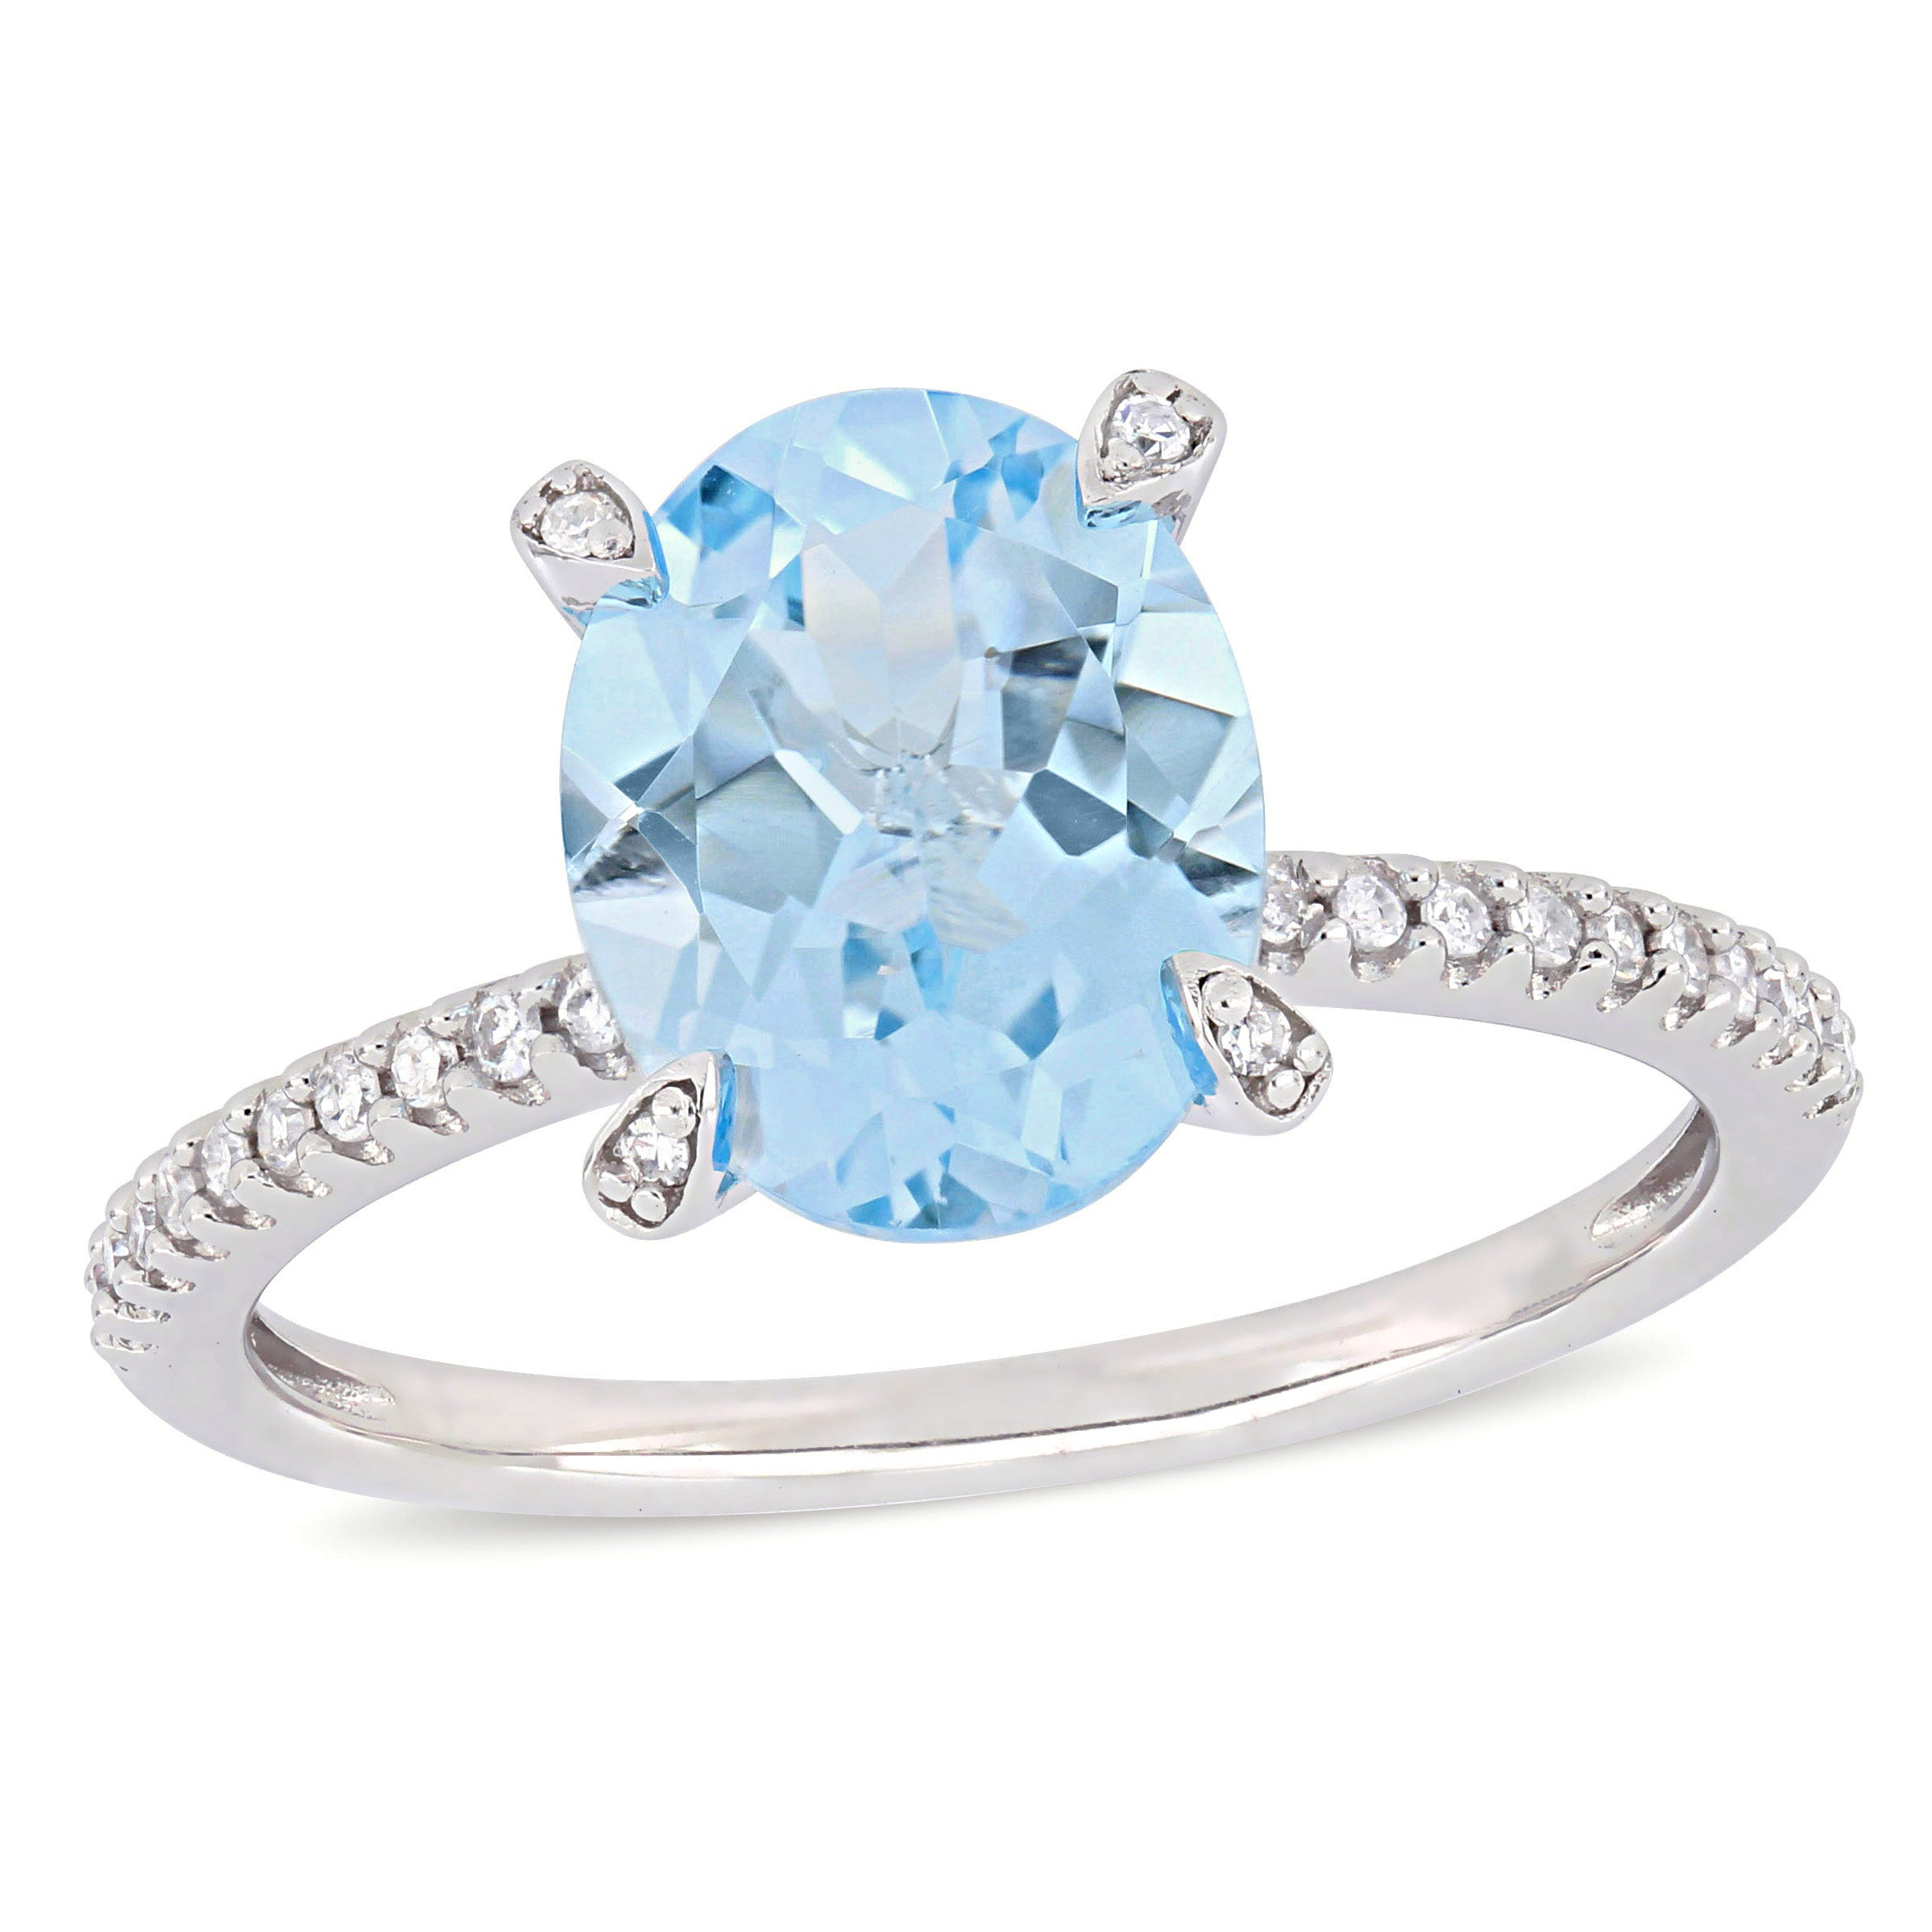 Oval Sky Blue Topaz & Diamond Engagement Ring in 10k White Gold